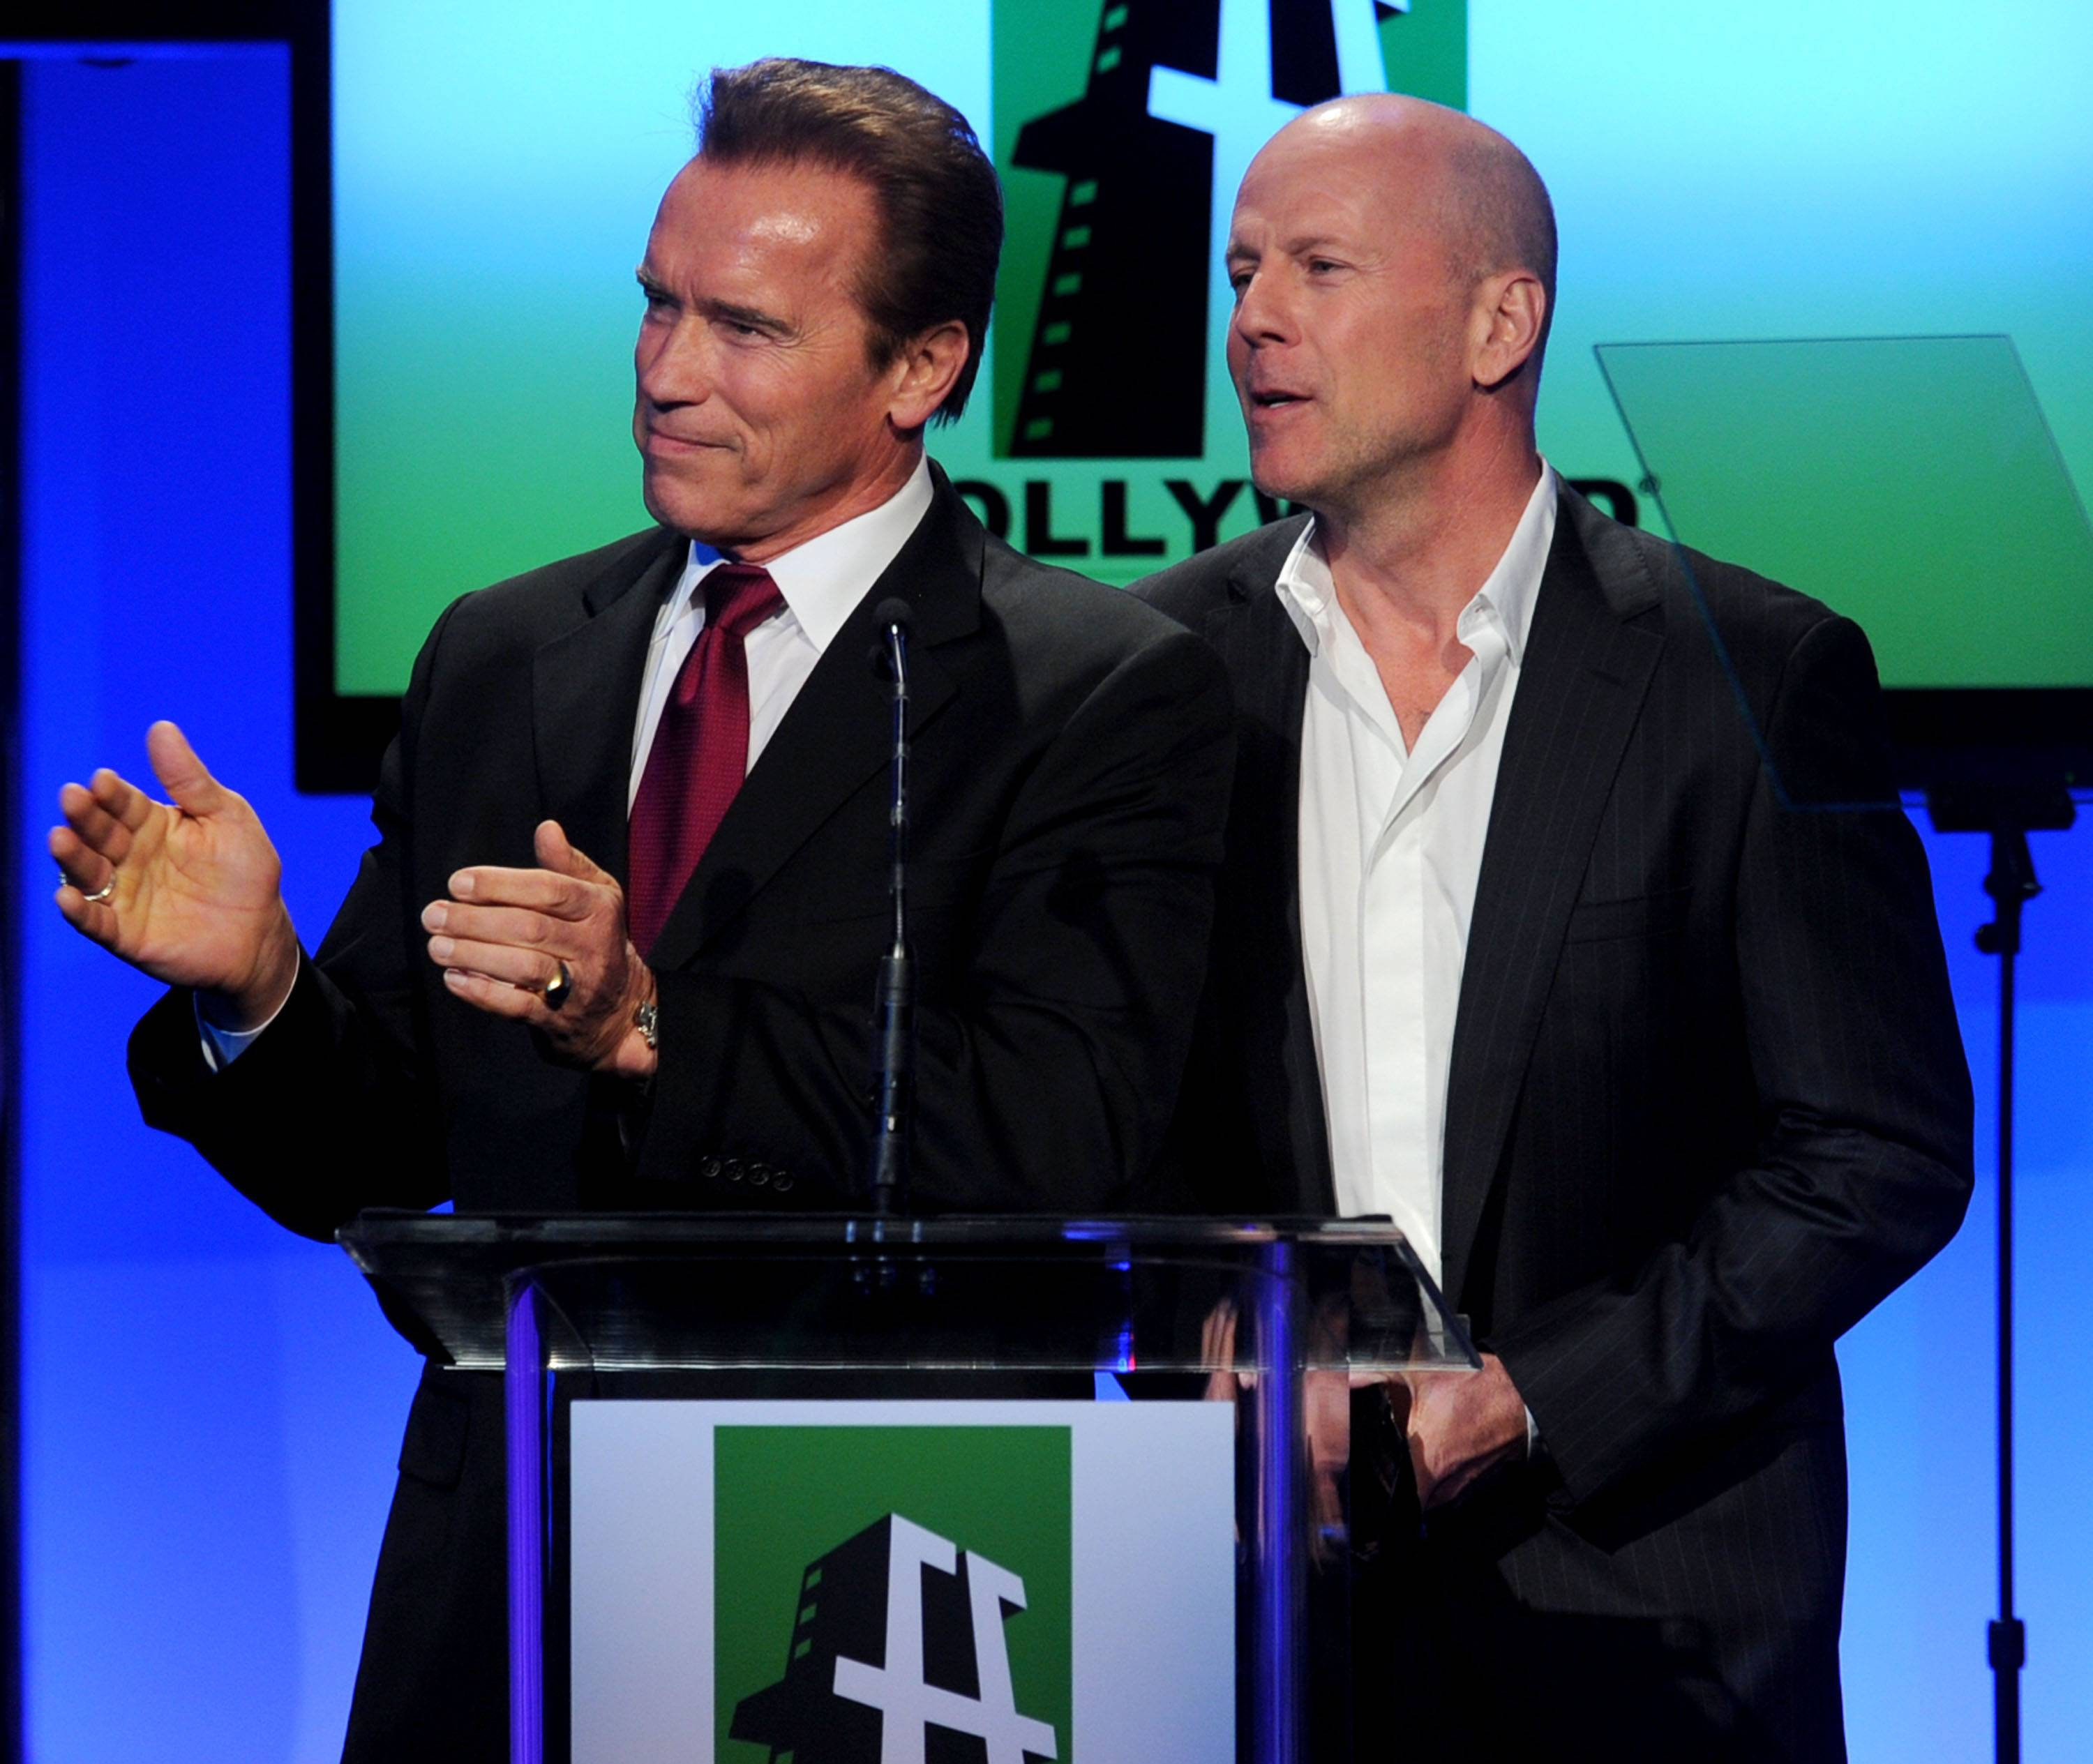 California governor Arnold Schwarzenegger (L) and actor Bruce Willis speak onstage during the 14th annual Hollywood Awards Gala at The Beverly Hilton Hotel on October 25, 2010 in Beverly Hills, California.